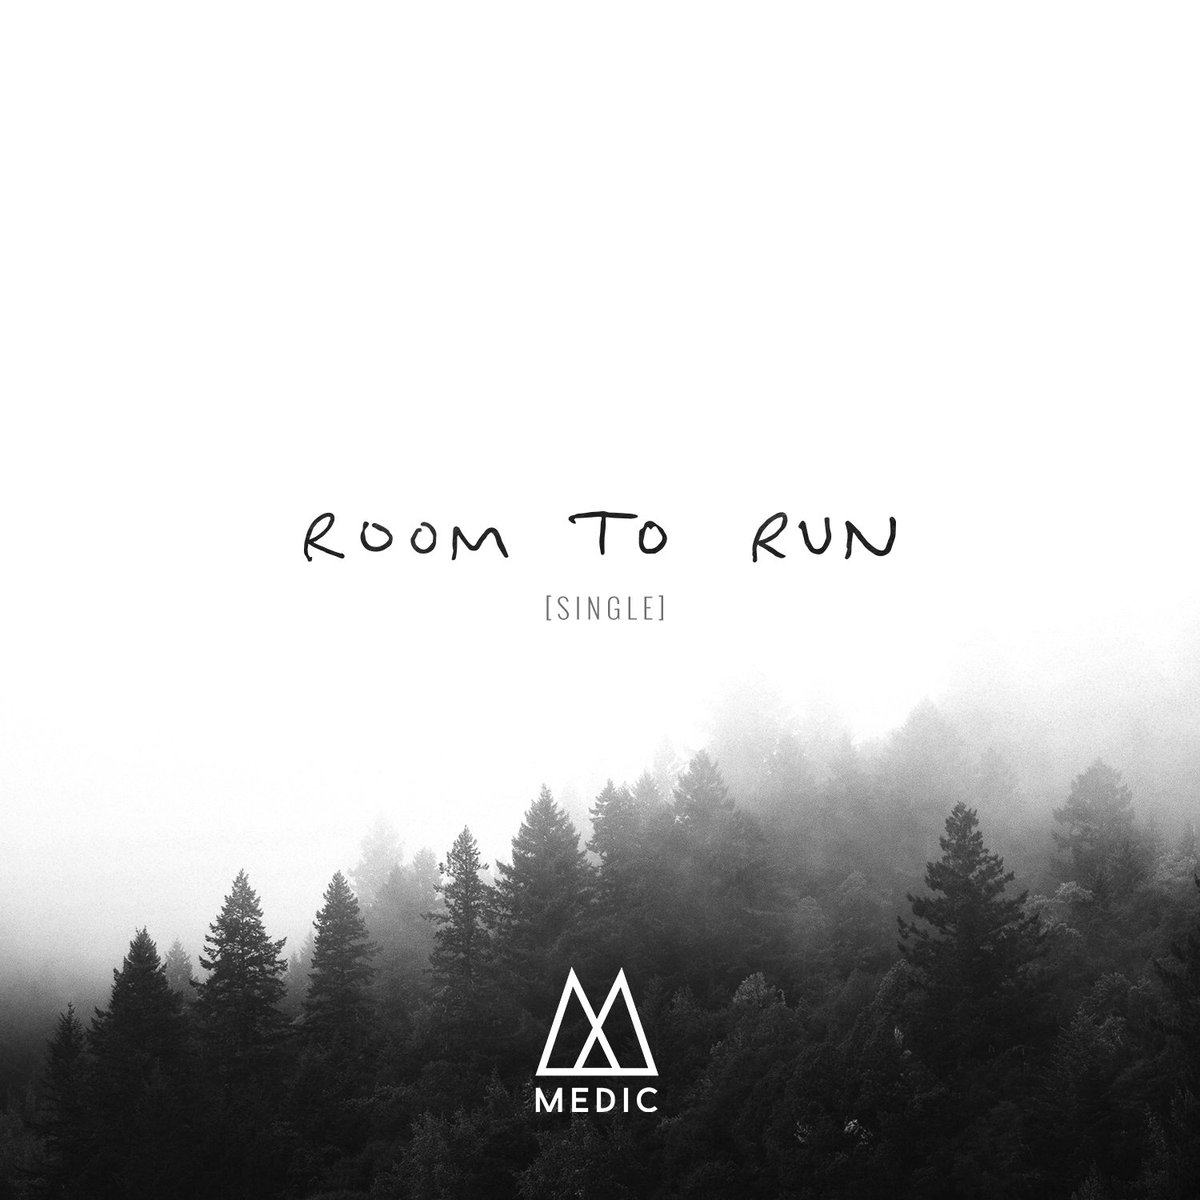 "Our new single ""Room to Run"" is here! Listen, enjoy and spread the word! #OlympiaIsComing https://t.co/vsNF0Rvk0u https://t.co/jd8ebXQzpS"